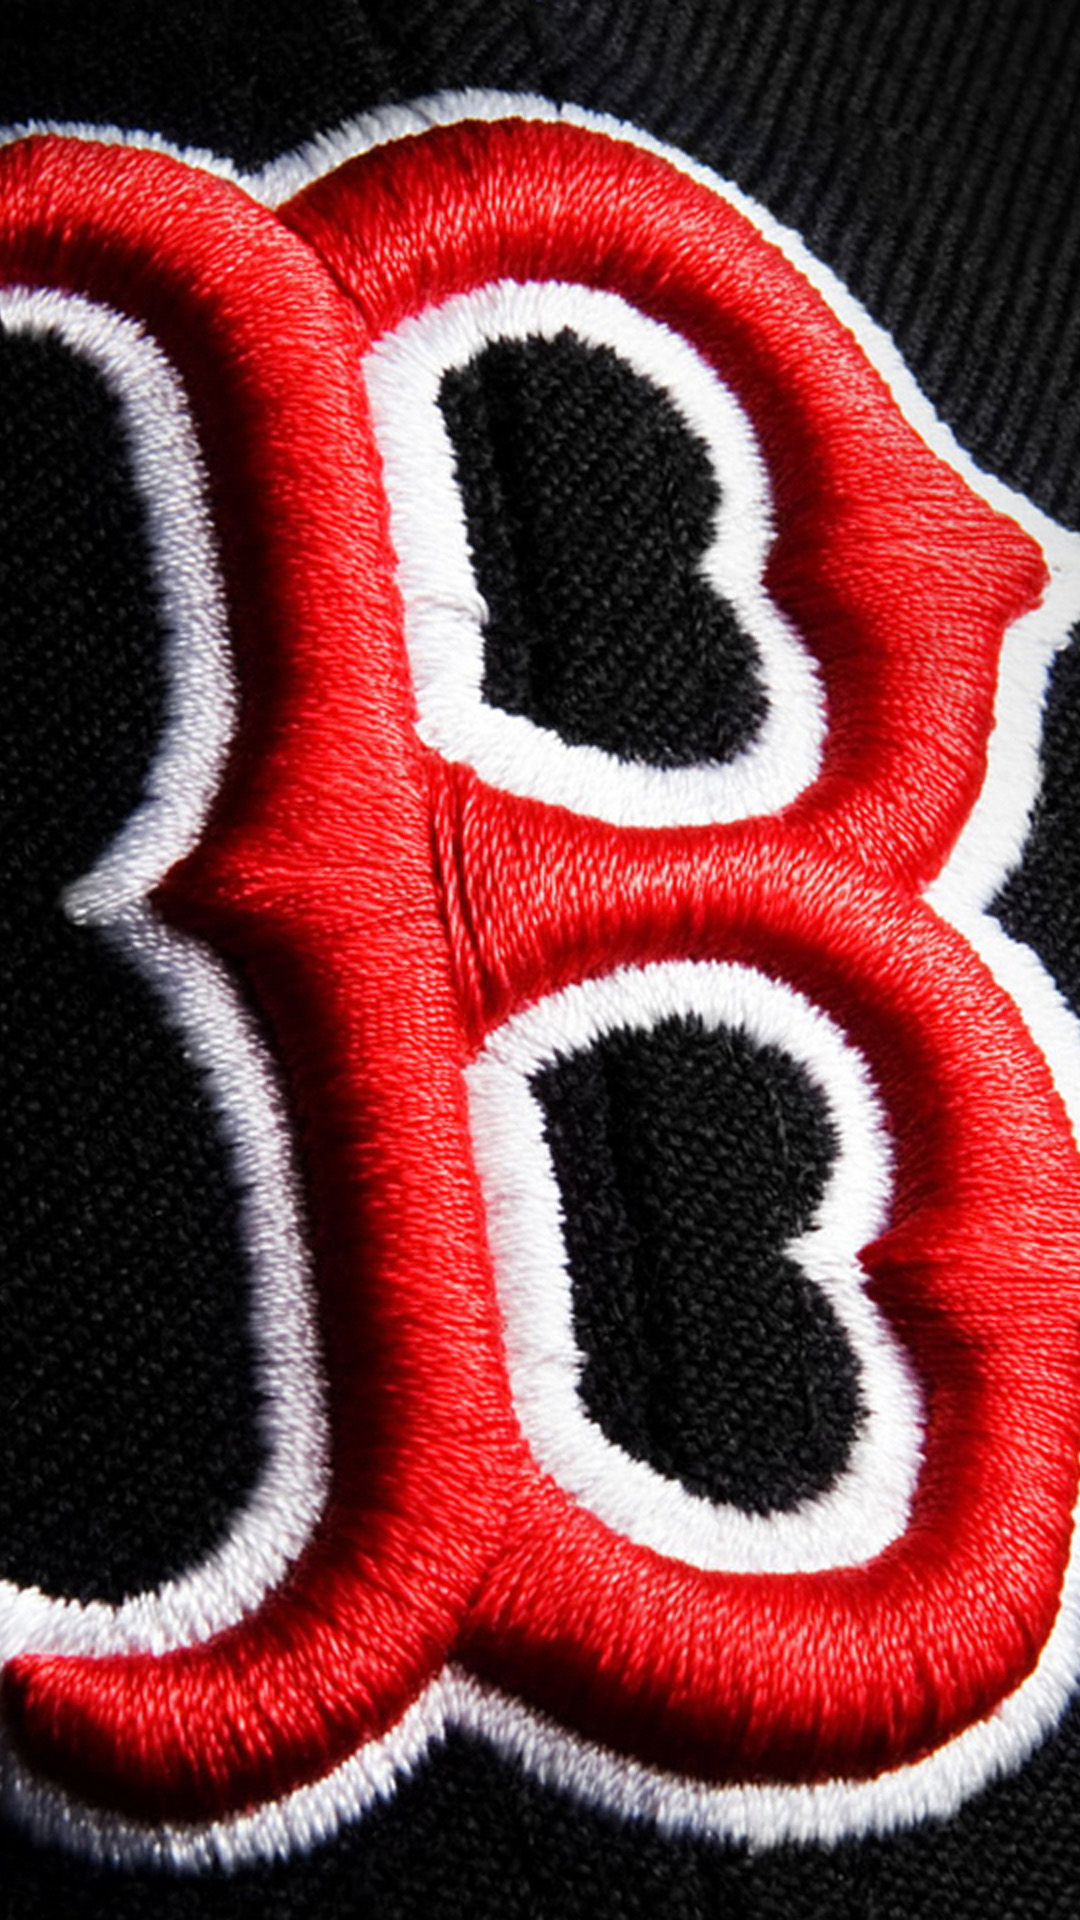 gallery for red sox iphone wallpaper